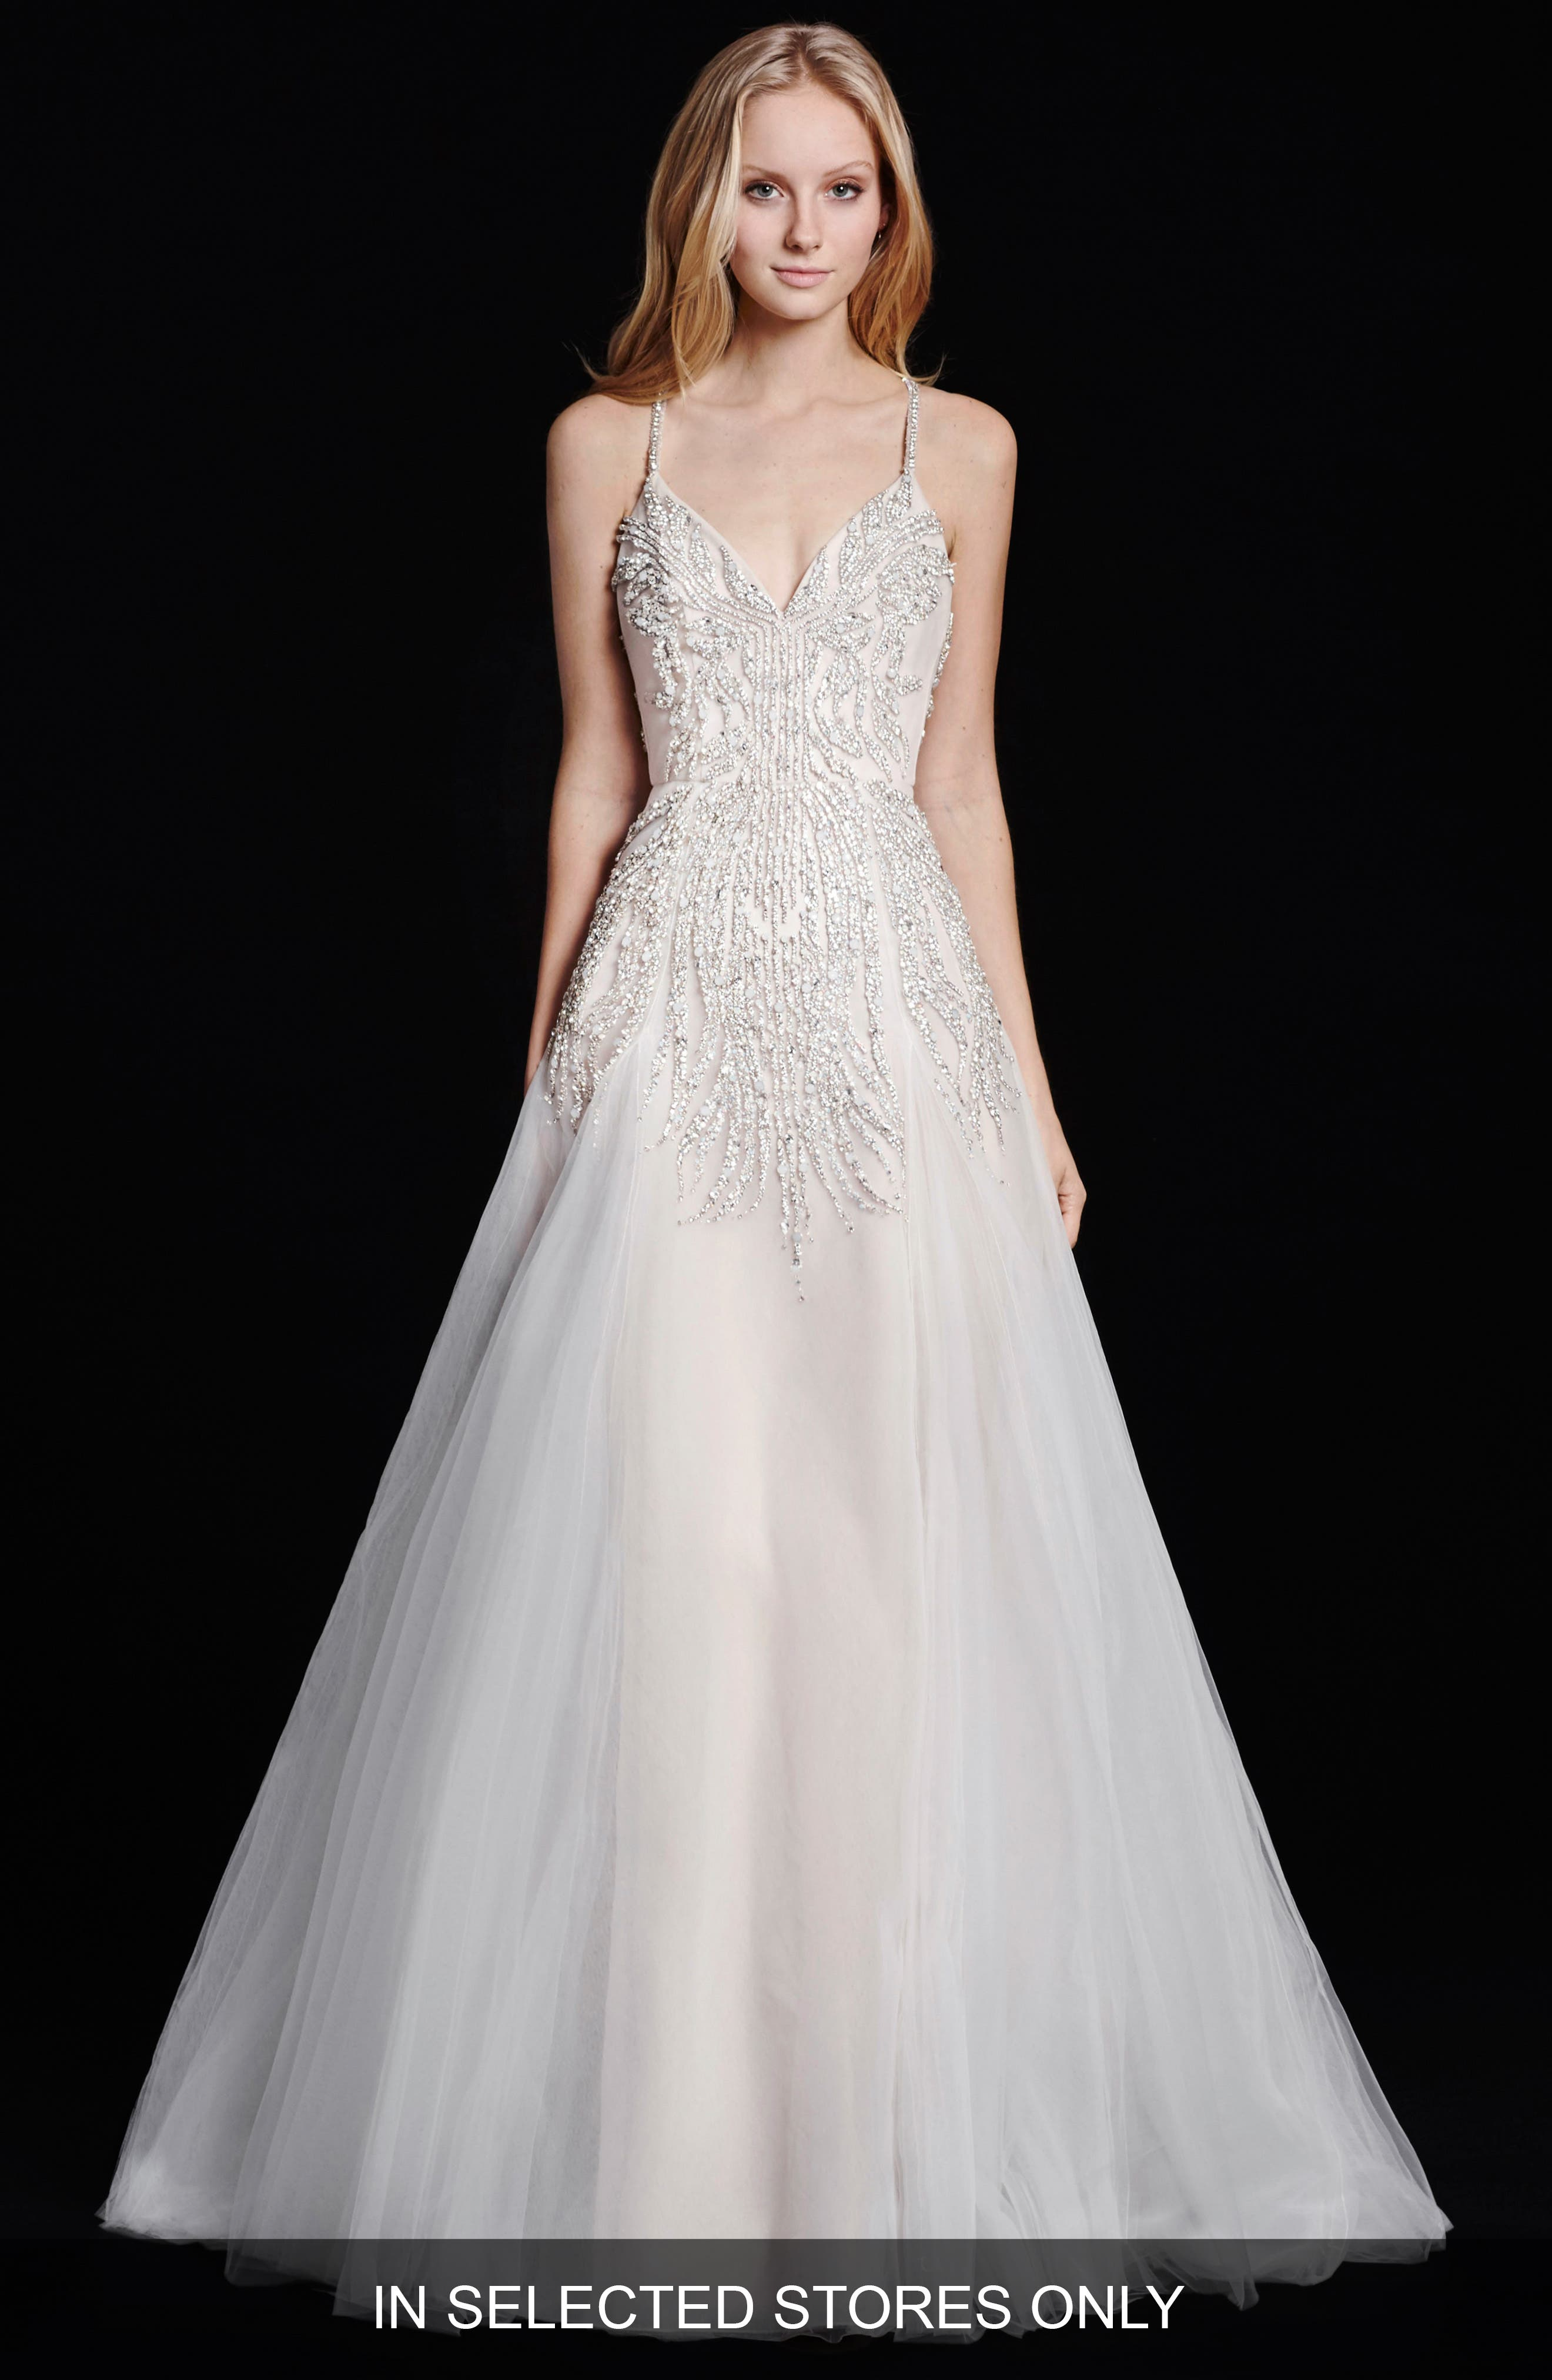 Hayley Paige 'Comet' Embellished Bodice A-Line Tulle Gown (In Stores Only)